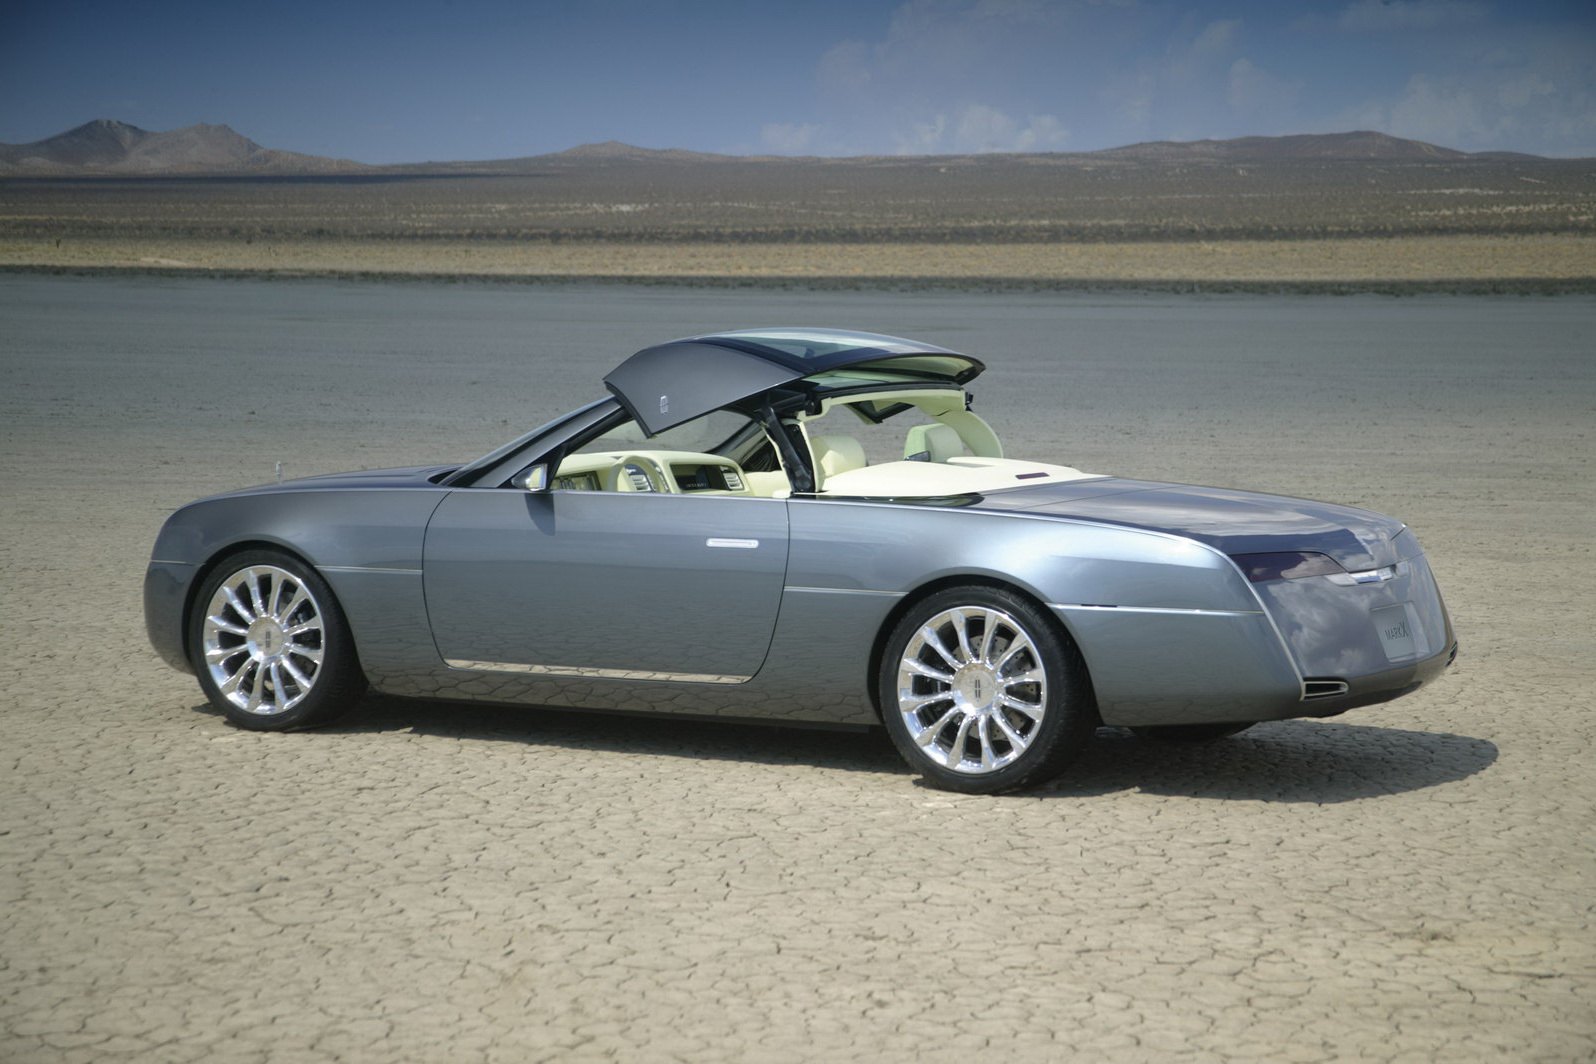 Car Types Lincoln Concept Models Including Mk9 And Mark X Going Up